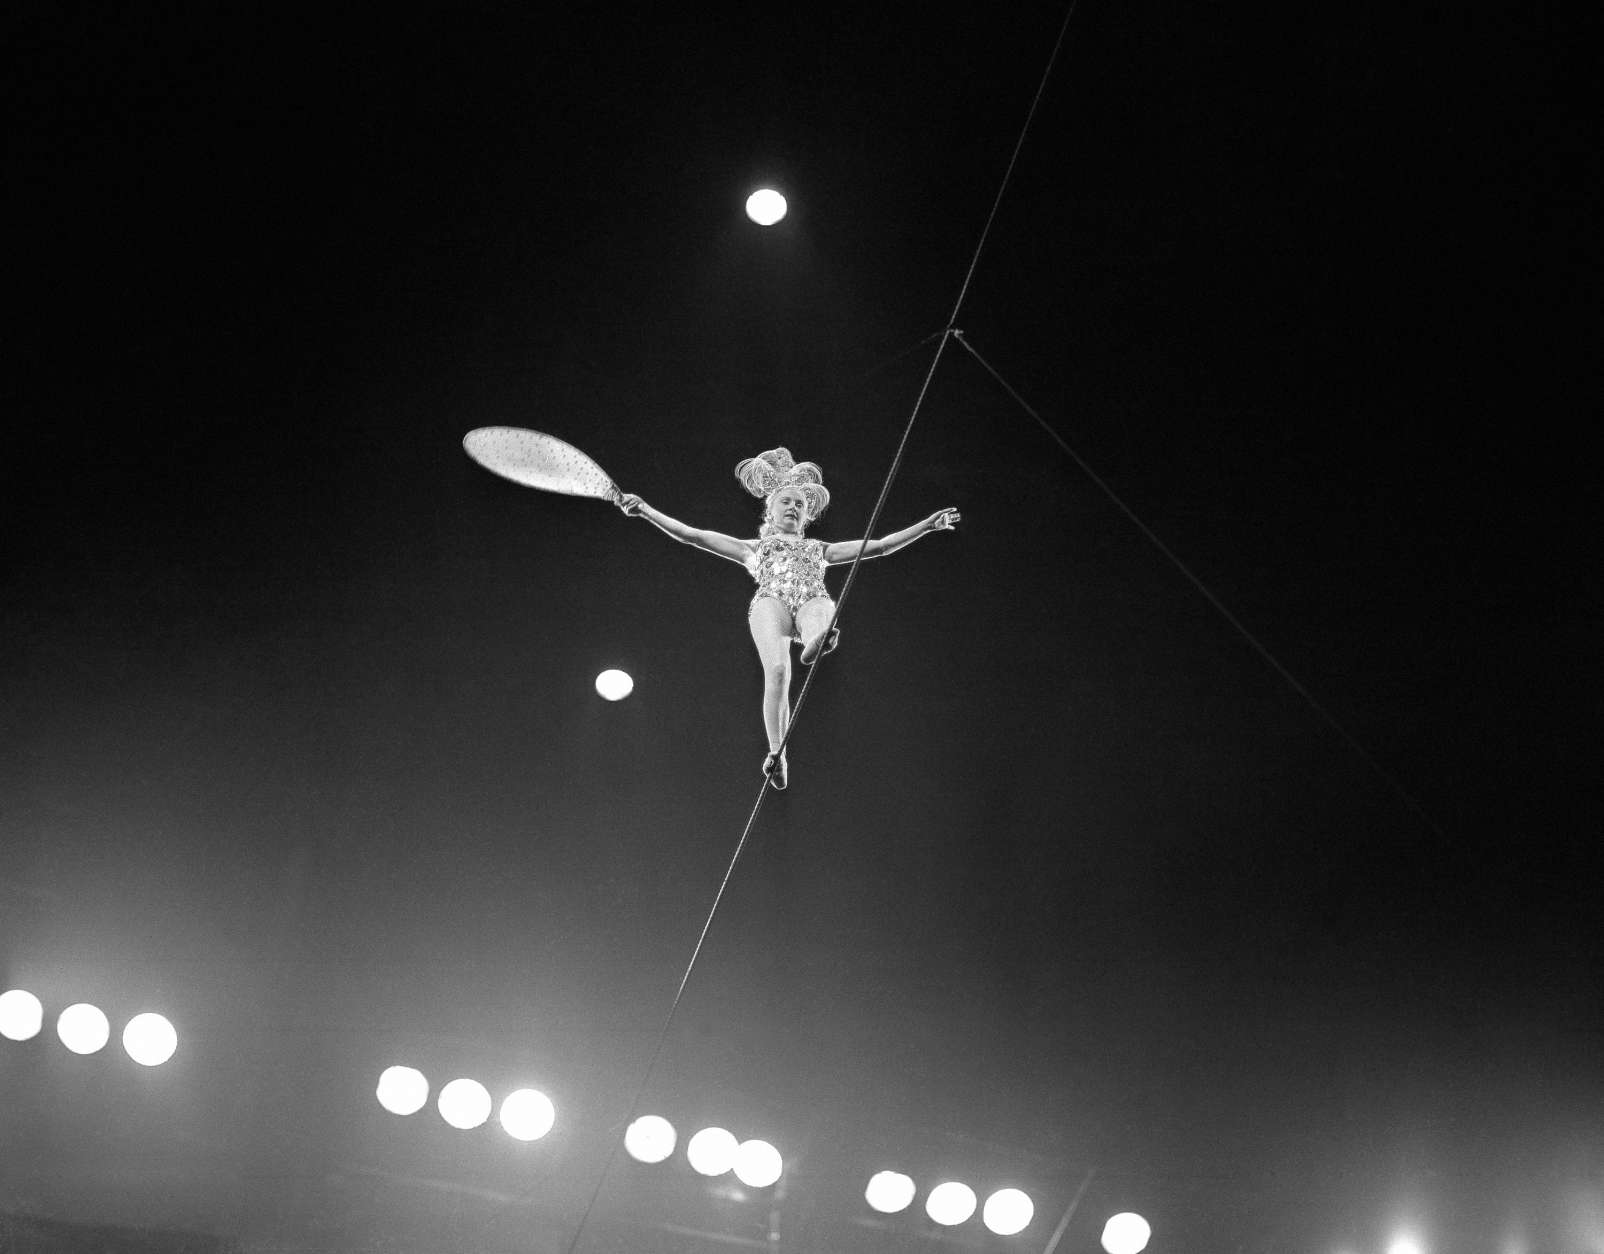 A woman walks a tightrope at the circus in 1955